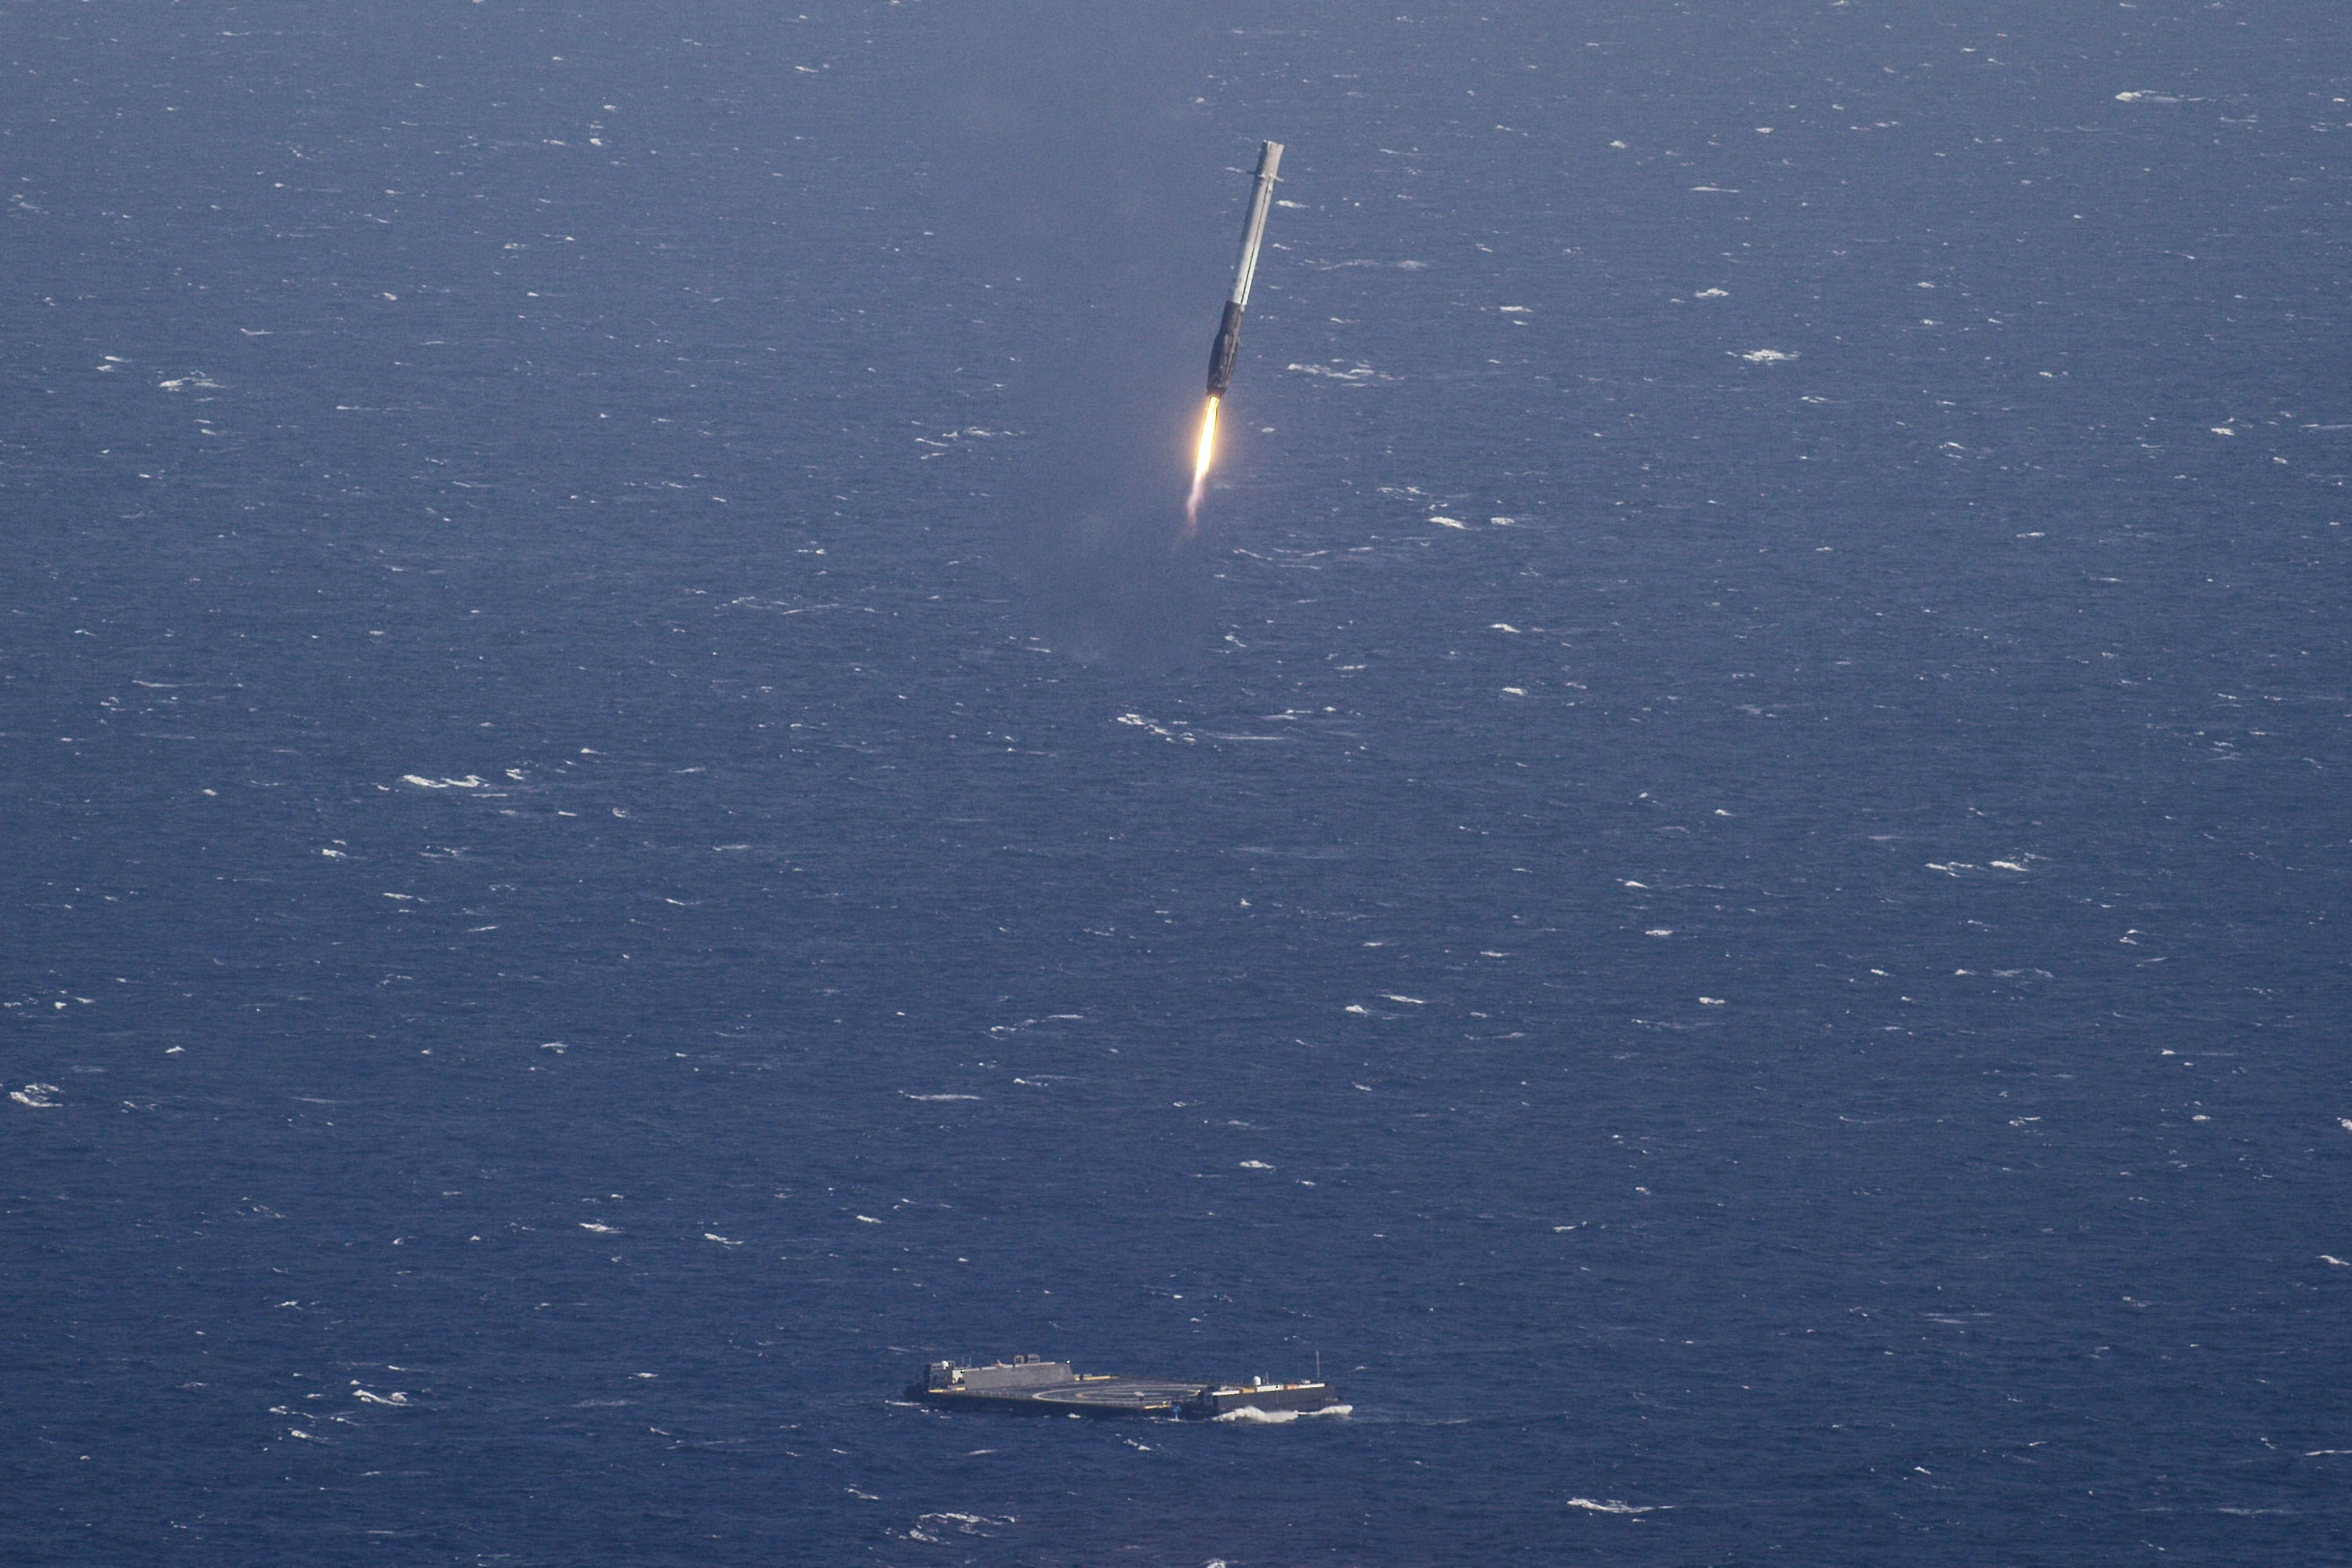 <p>SpaceX makes history landing the first rocket at sea. And giving that photo for anyone to use on Unsplash.</p>